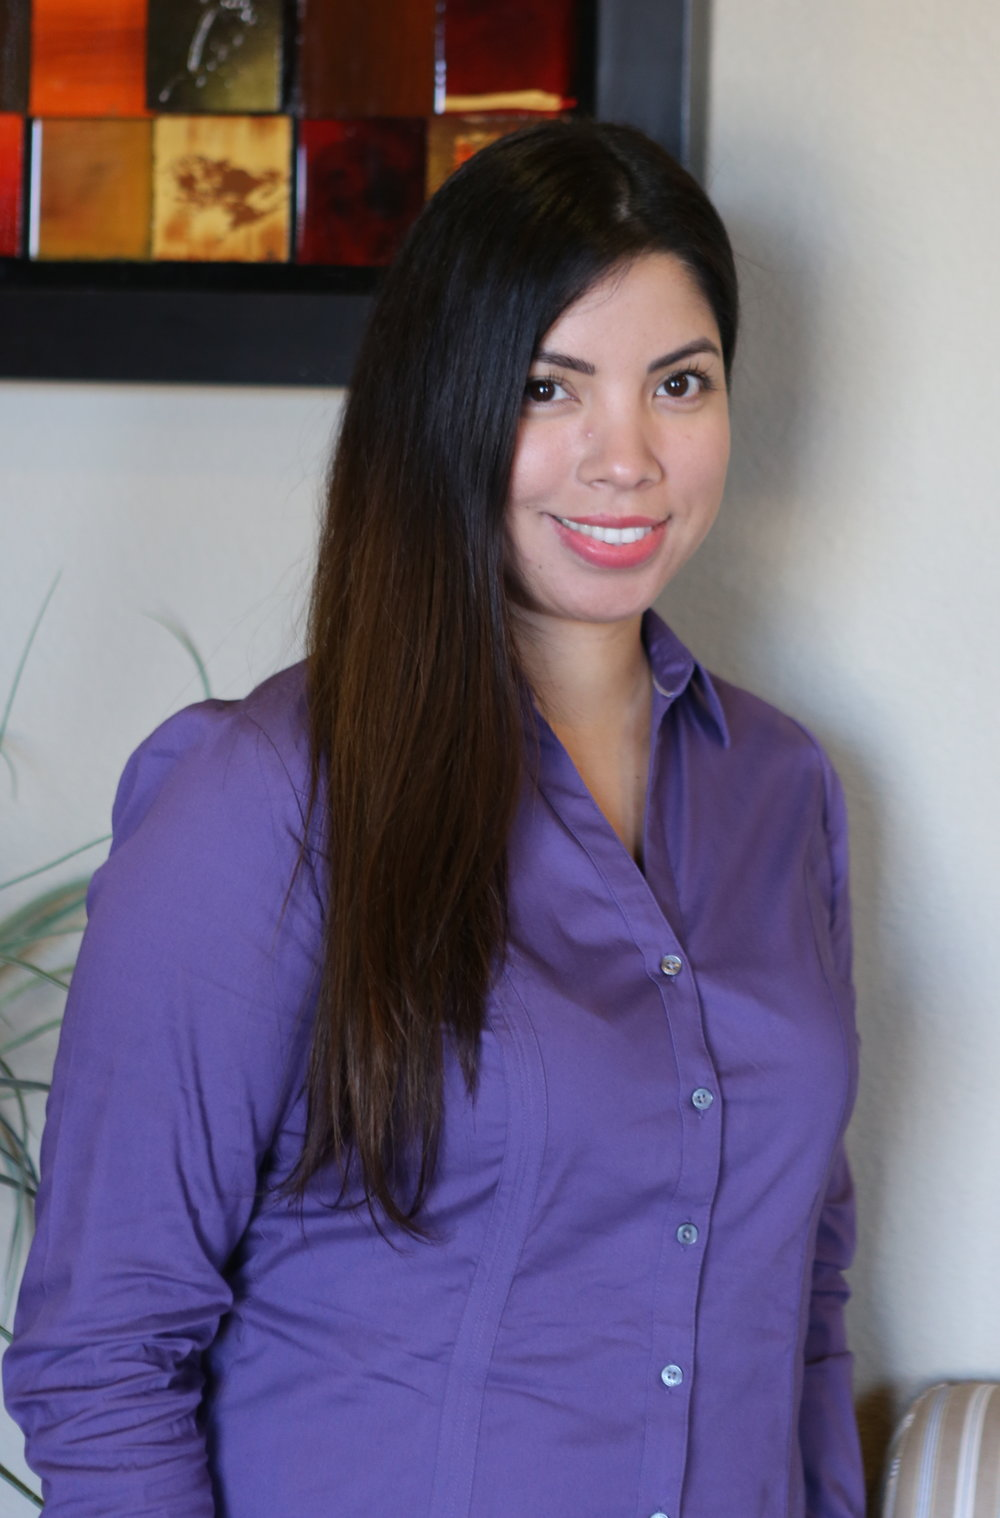 Violet - Violet is committed to making patient satisfaction her top priority. As our office manager, Violet has over a decade of experience in business administration.She currently resides in Grand Prairie and enjoys baking and spending her free time with family.